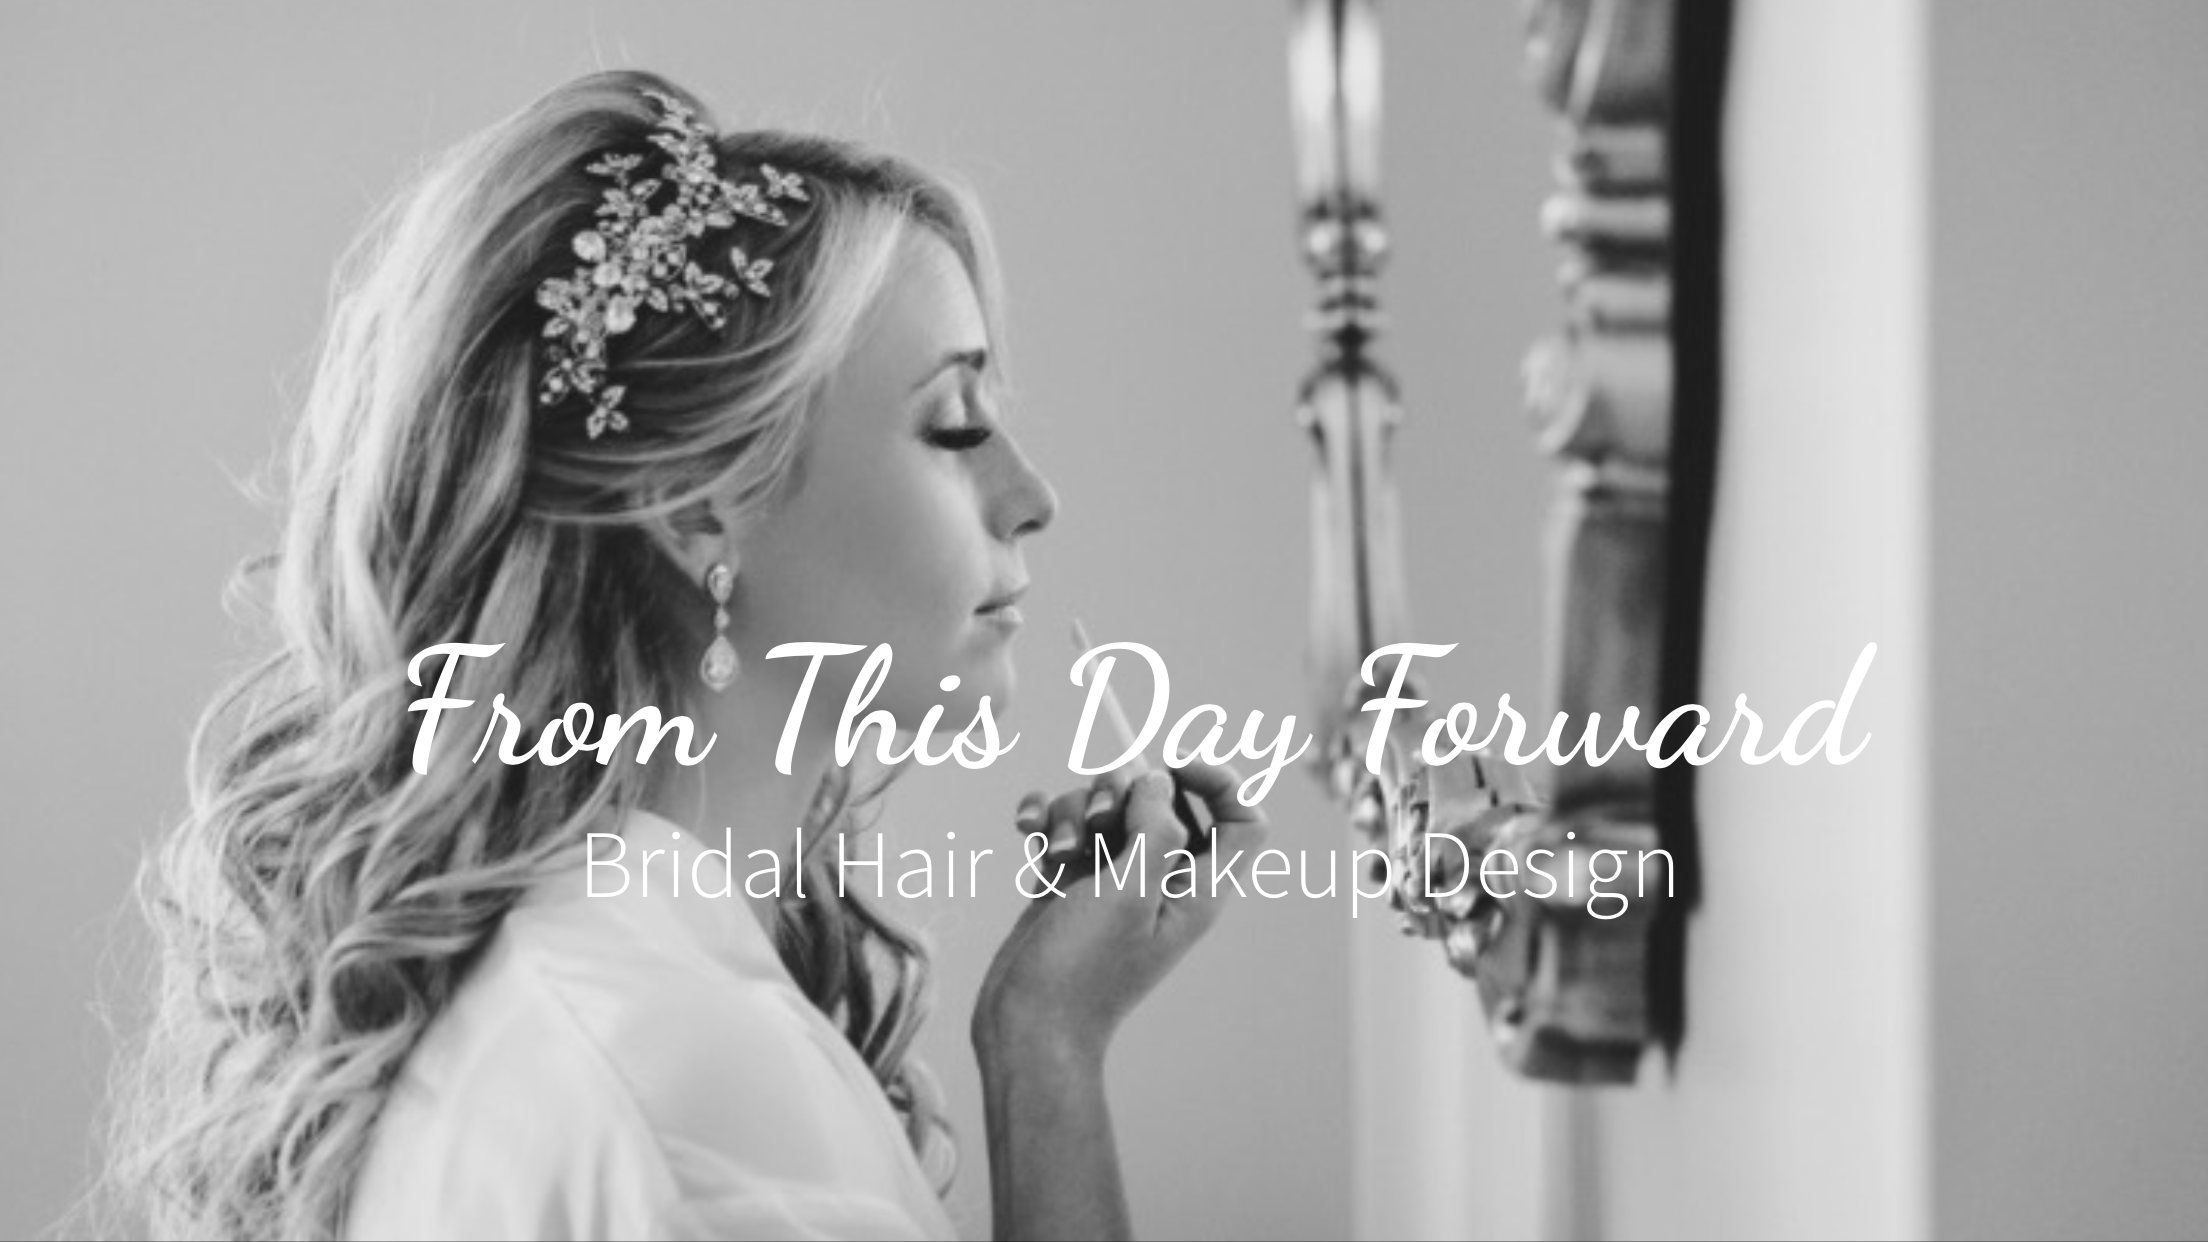 beauty salons in freehold, nj - the knot